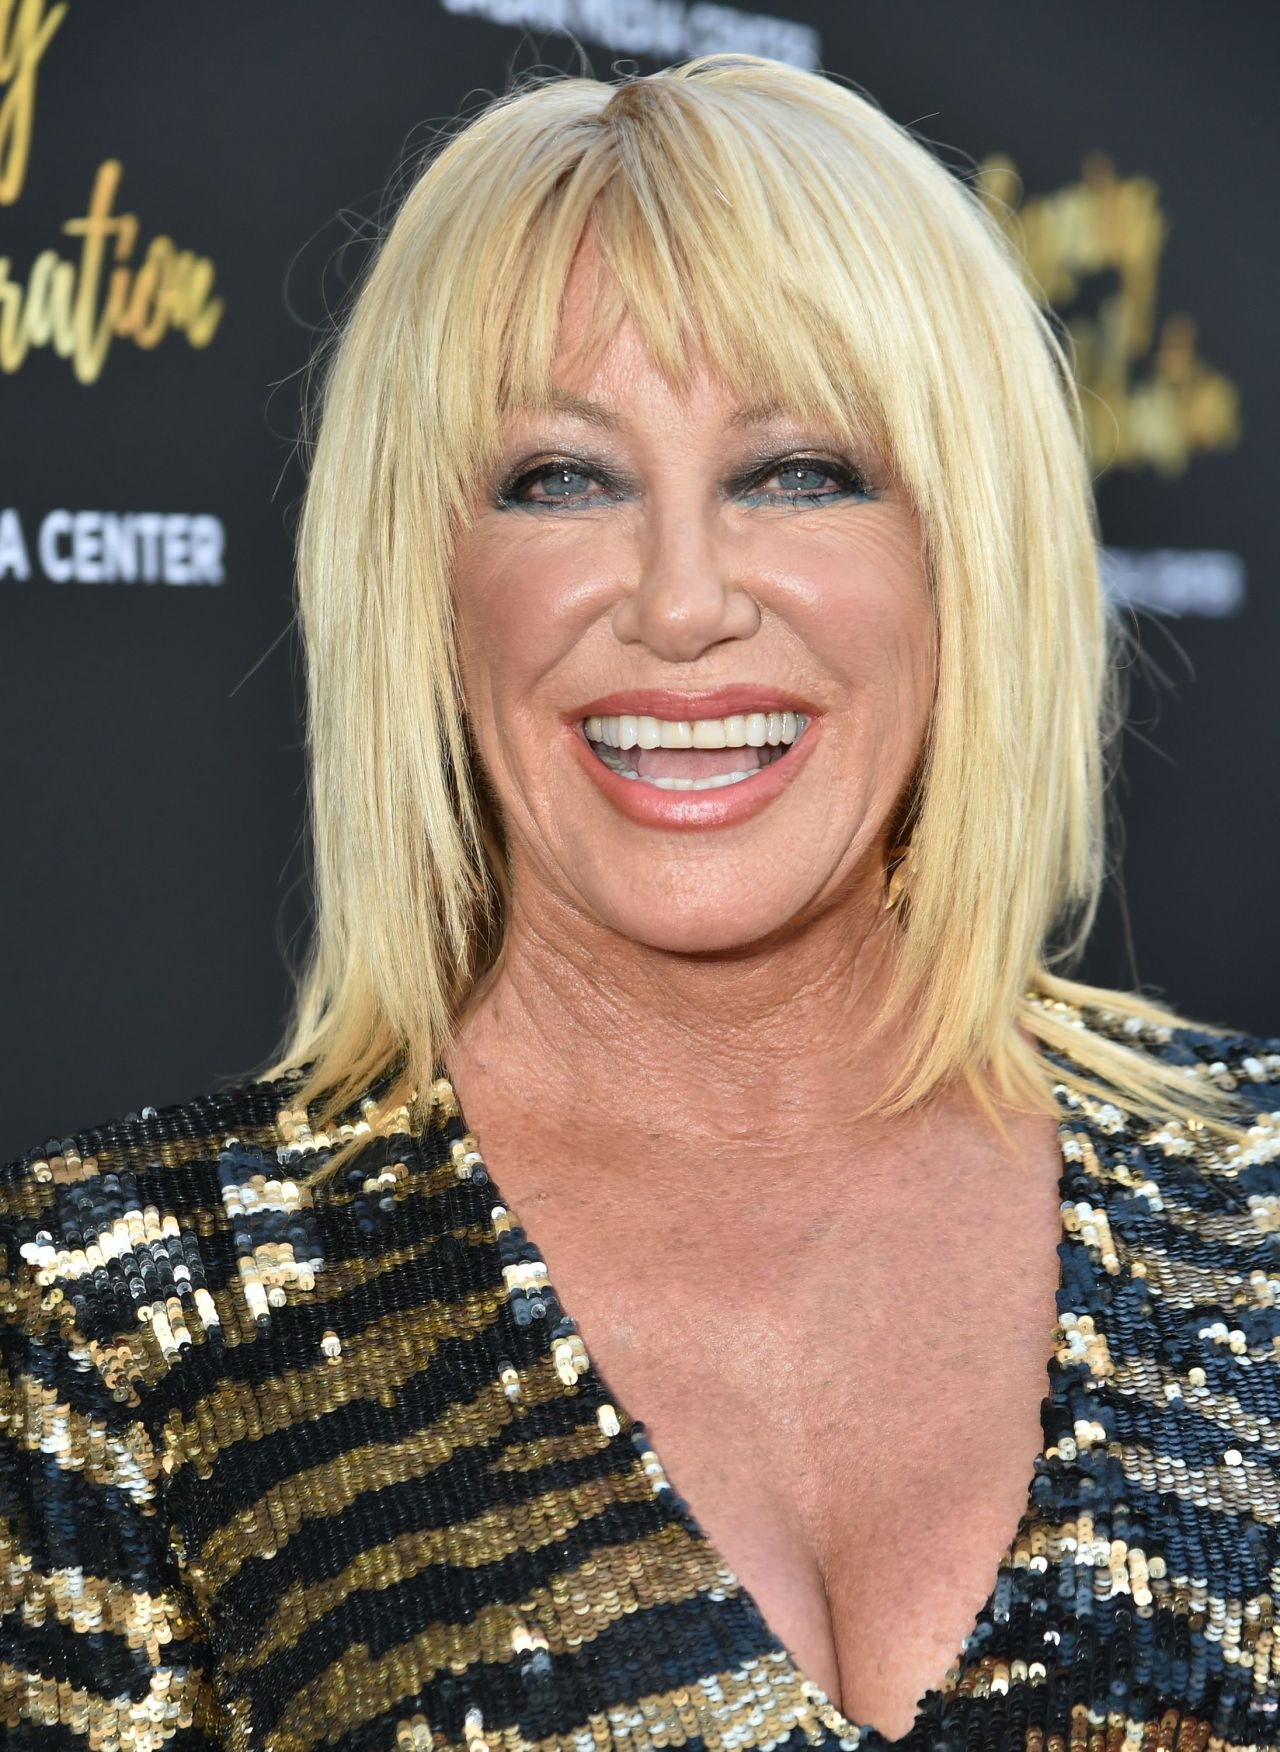 Suzanne Somers - 2014 UNICEF Ball | 5 Pictures ... |Suzanne Somers 2014